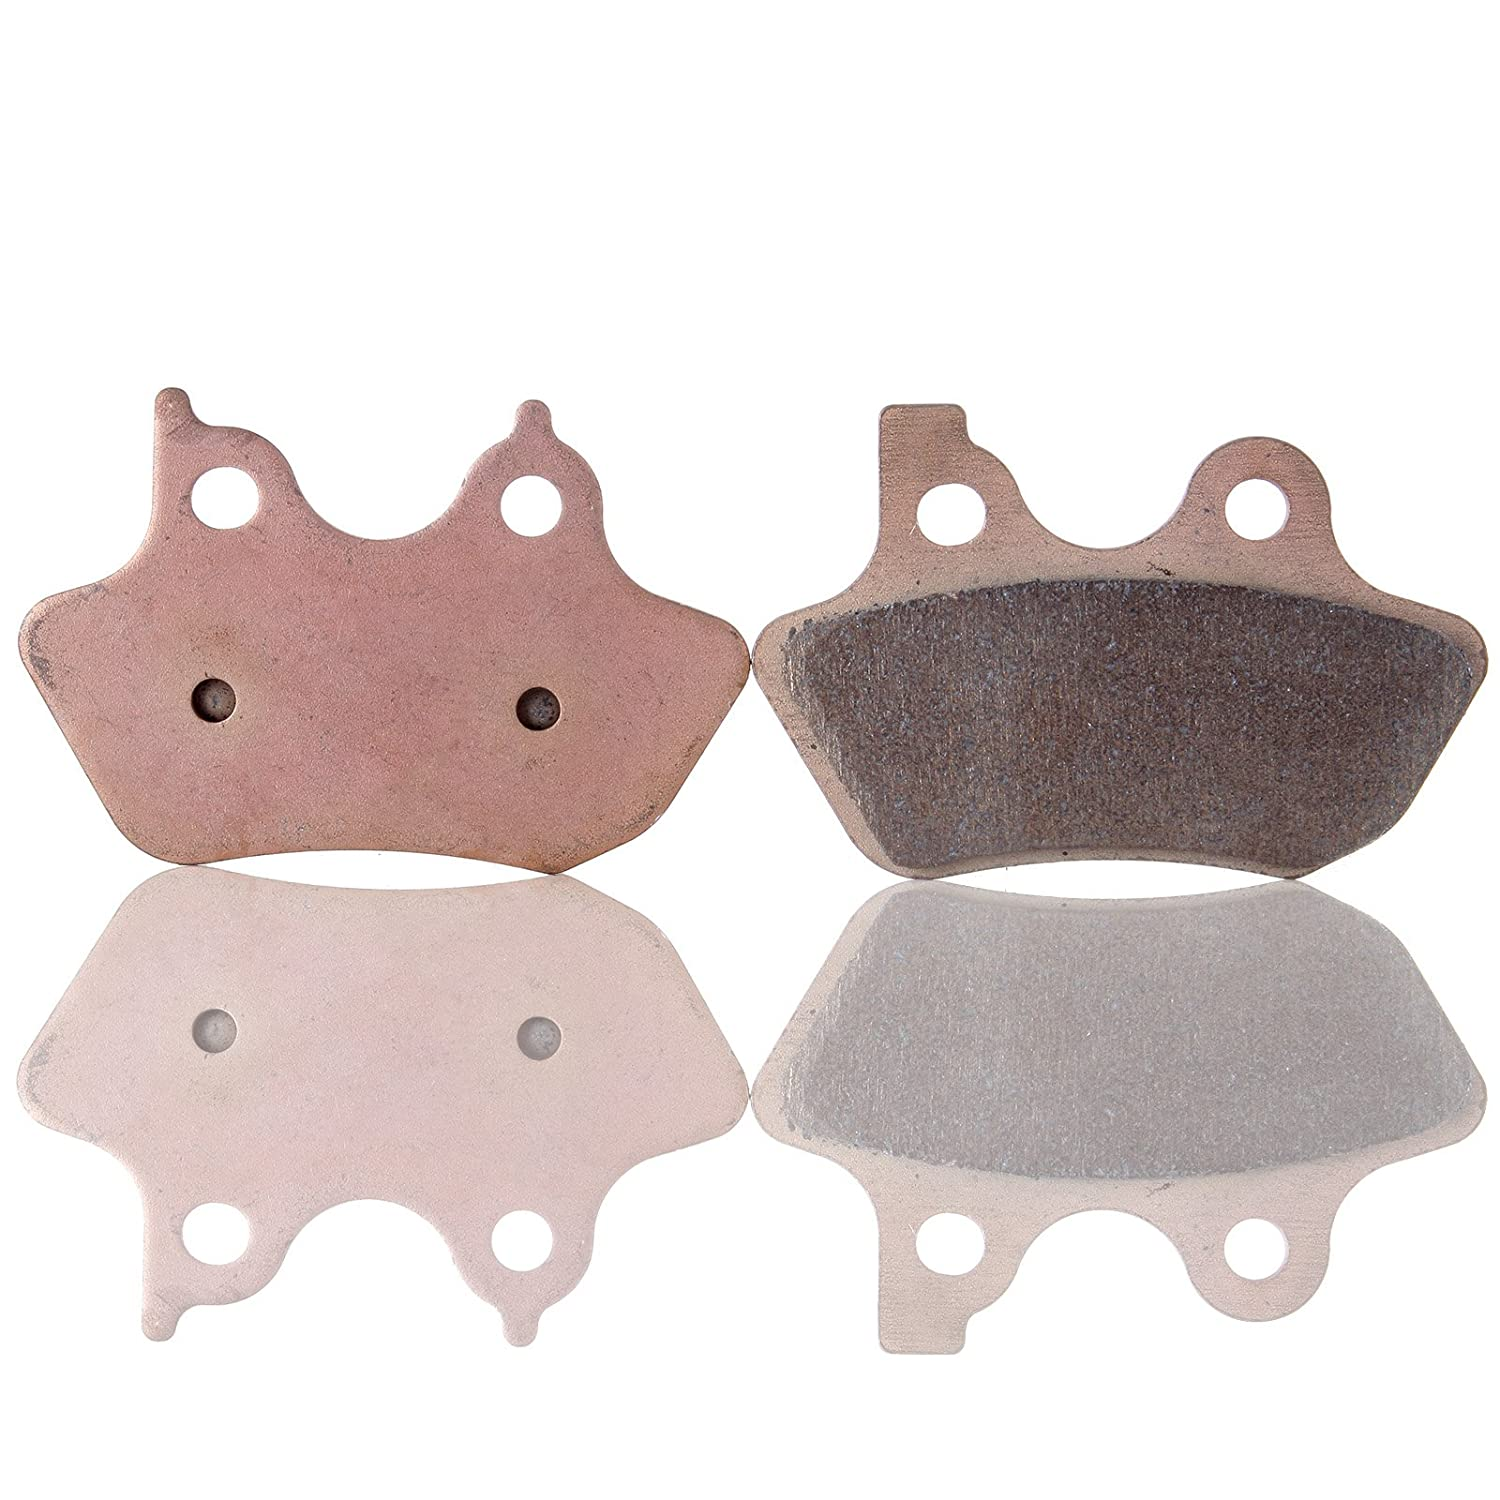 ECCPP FA400 Brake Pads Rear Sintered Replacement Brake Pads Kits Fit for Harley-Davidson Dyna Fatboy Heritage Softail Night Train Softail Sportster 883 FA400 052909-5211-1406451